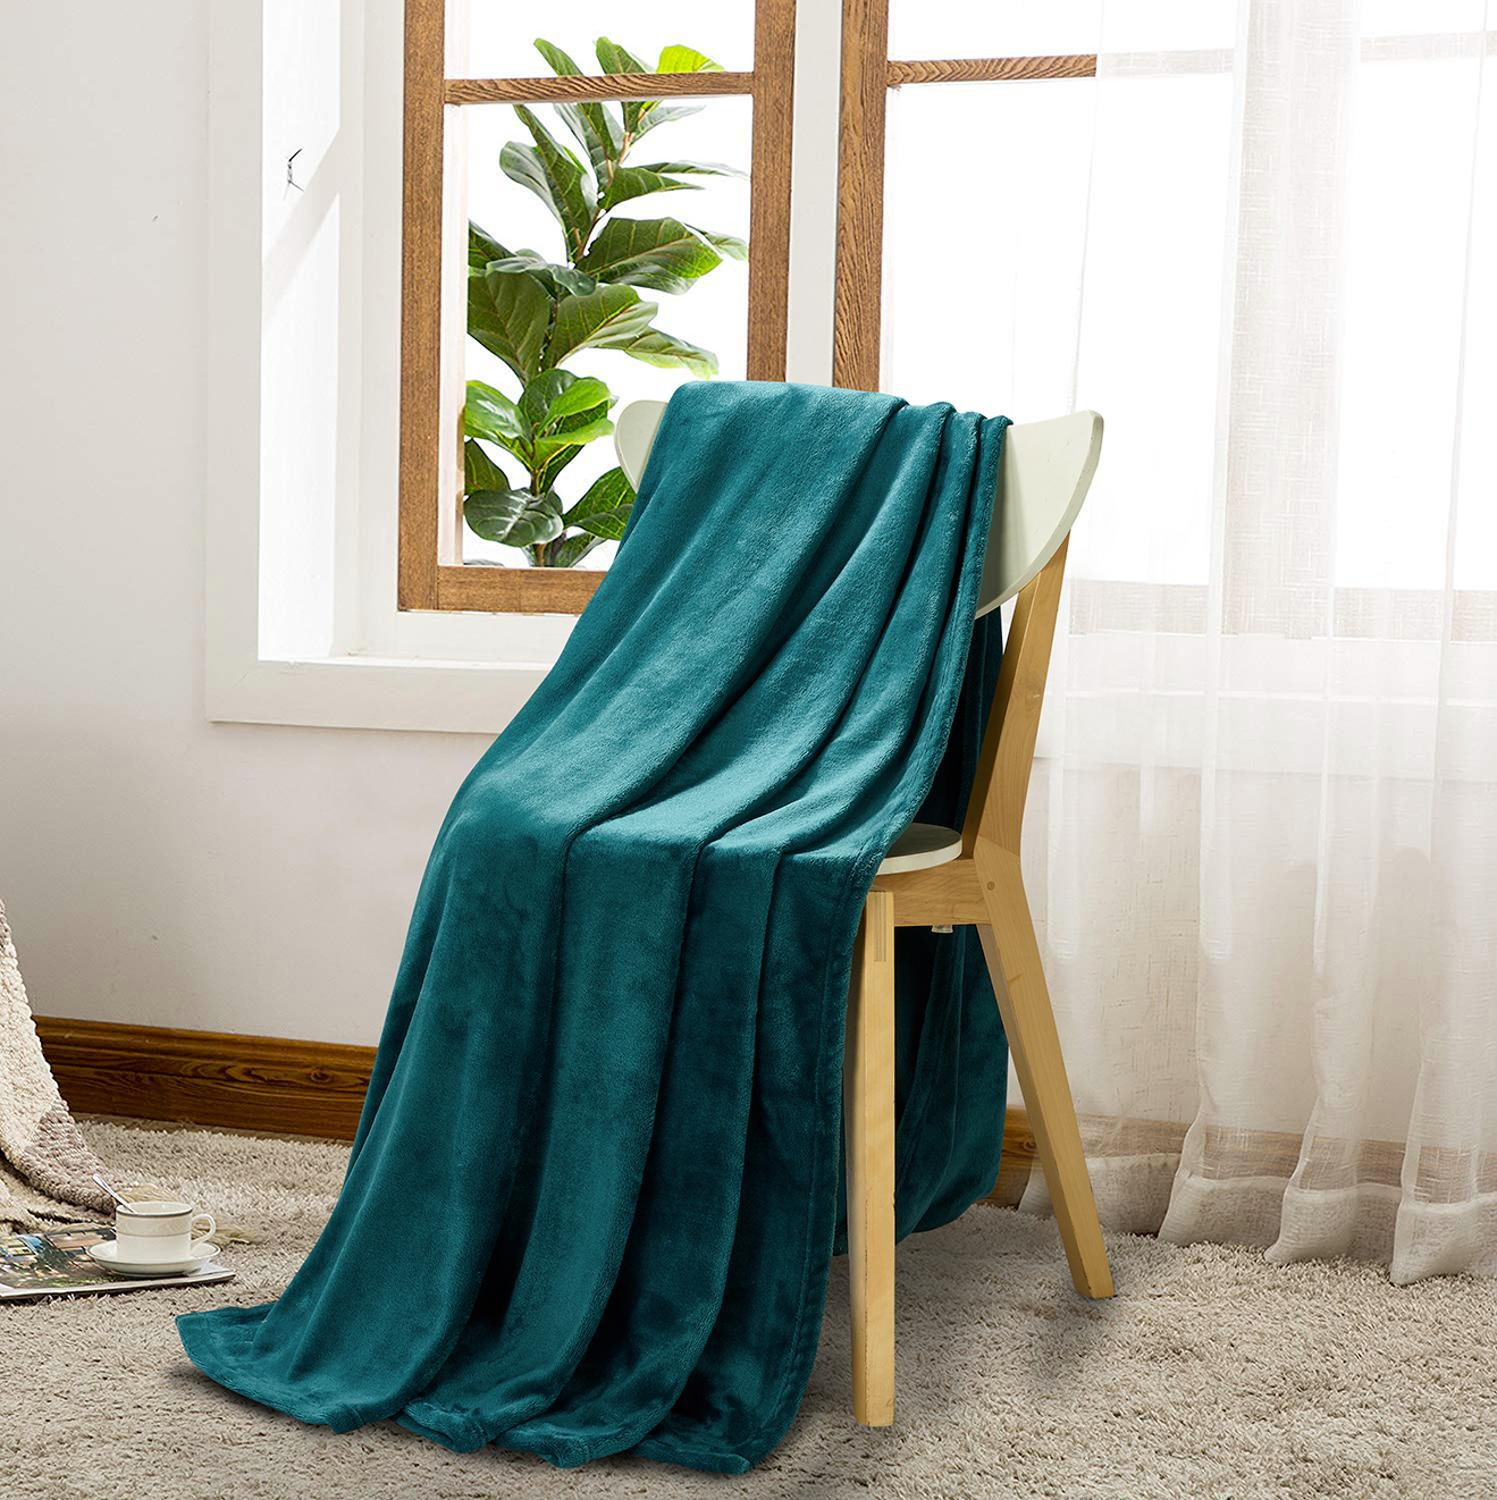 PimpamTex-velvet-touch sofa decorative blanket, super soft and warm for bed, smooth models-3